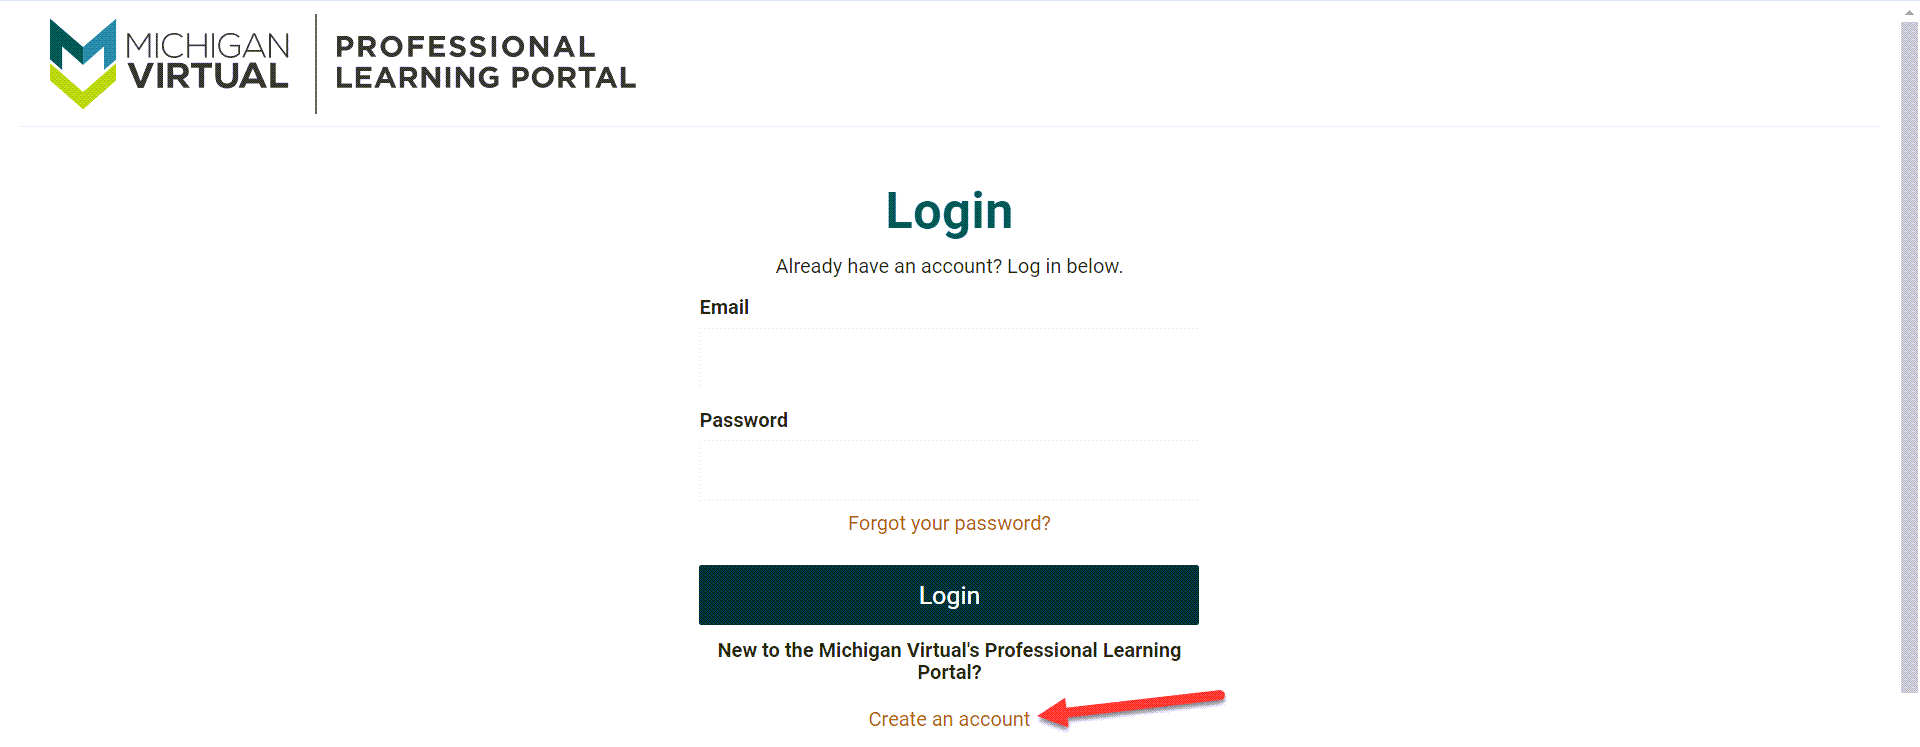 The login page appears prompting existing users to login. At the bottom of the page an arrow points to the Create An Account link for new users.